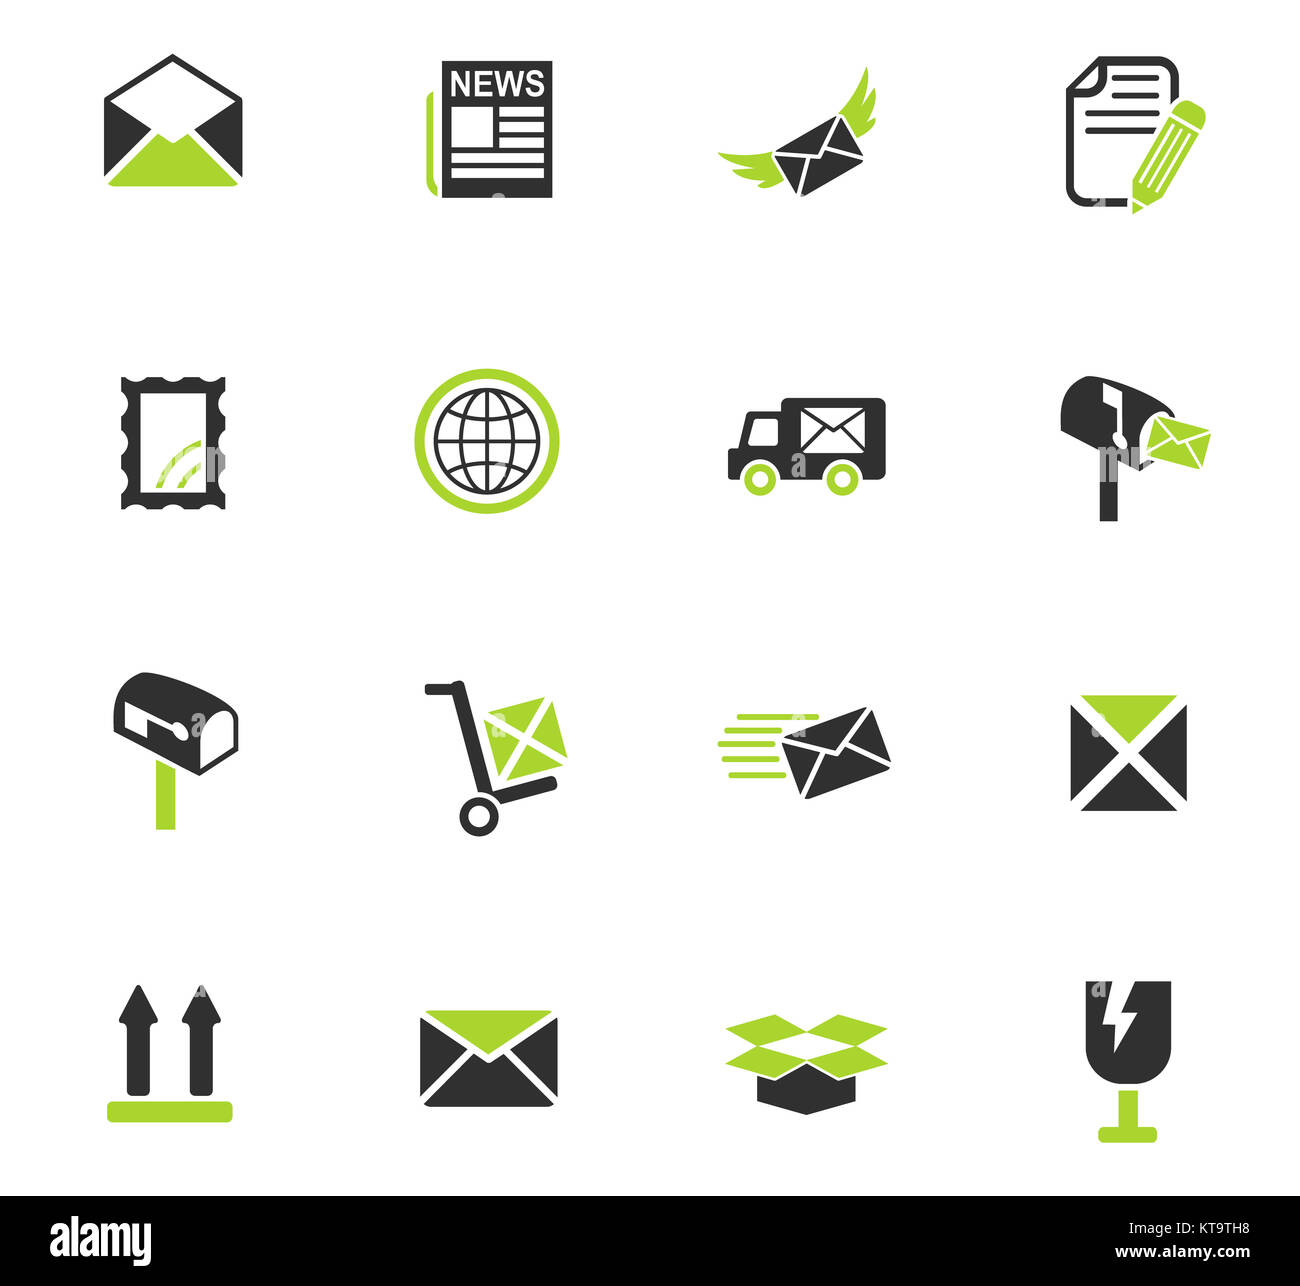 post service icon set - Stock Image